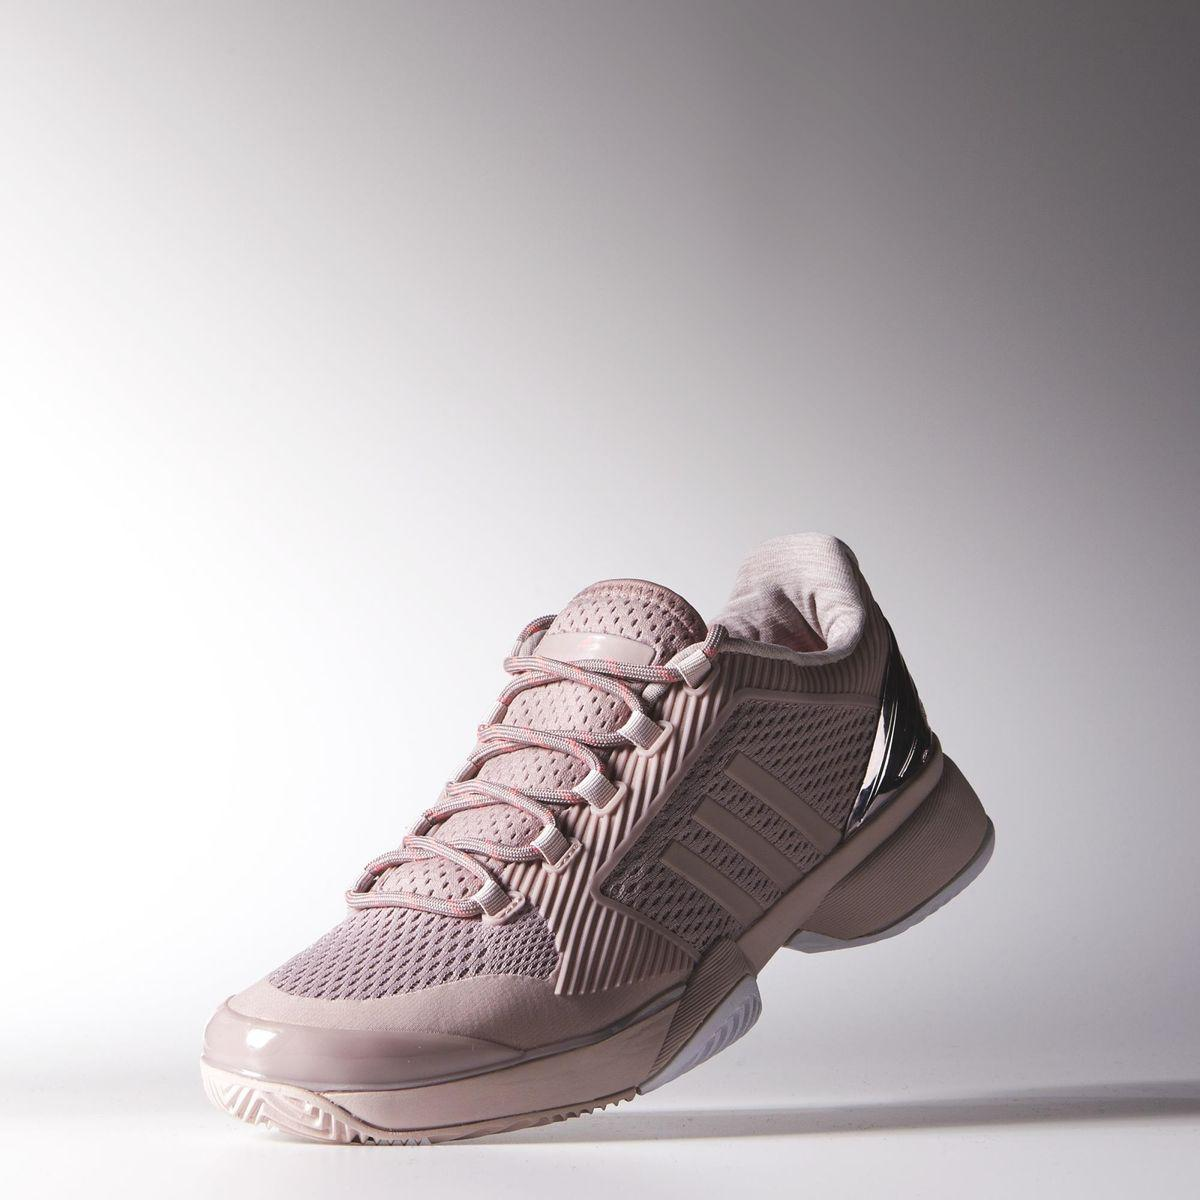 Stella Mccartney Tennis Shoes Pink